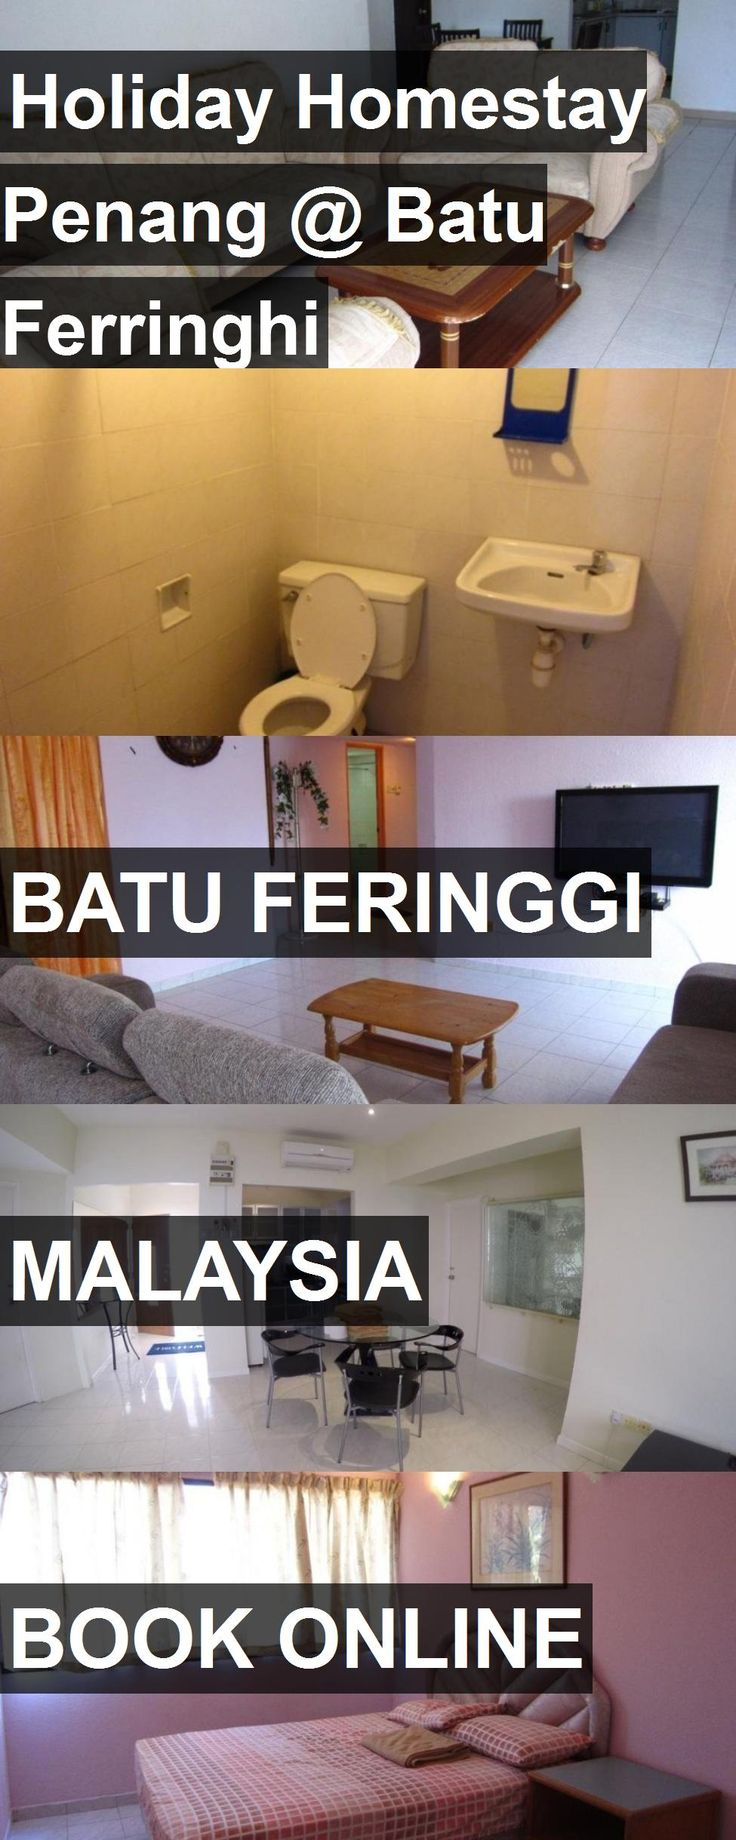 Hotel Holiday Homestay Penang @ Batu Ferringhi in Batu Feringgi, Malaysia. For more information, photos, reviews and best prices please follow the link. #Malaysia #BatuFeringgi #HolidayHomestayPenang@BatuFerringhi #hotel #travel #vacation